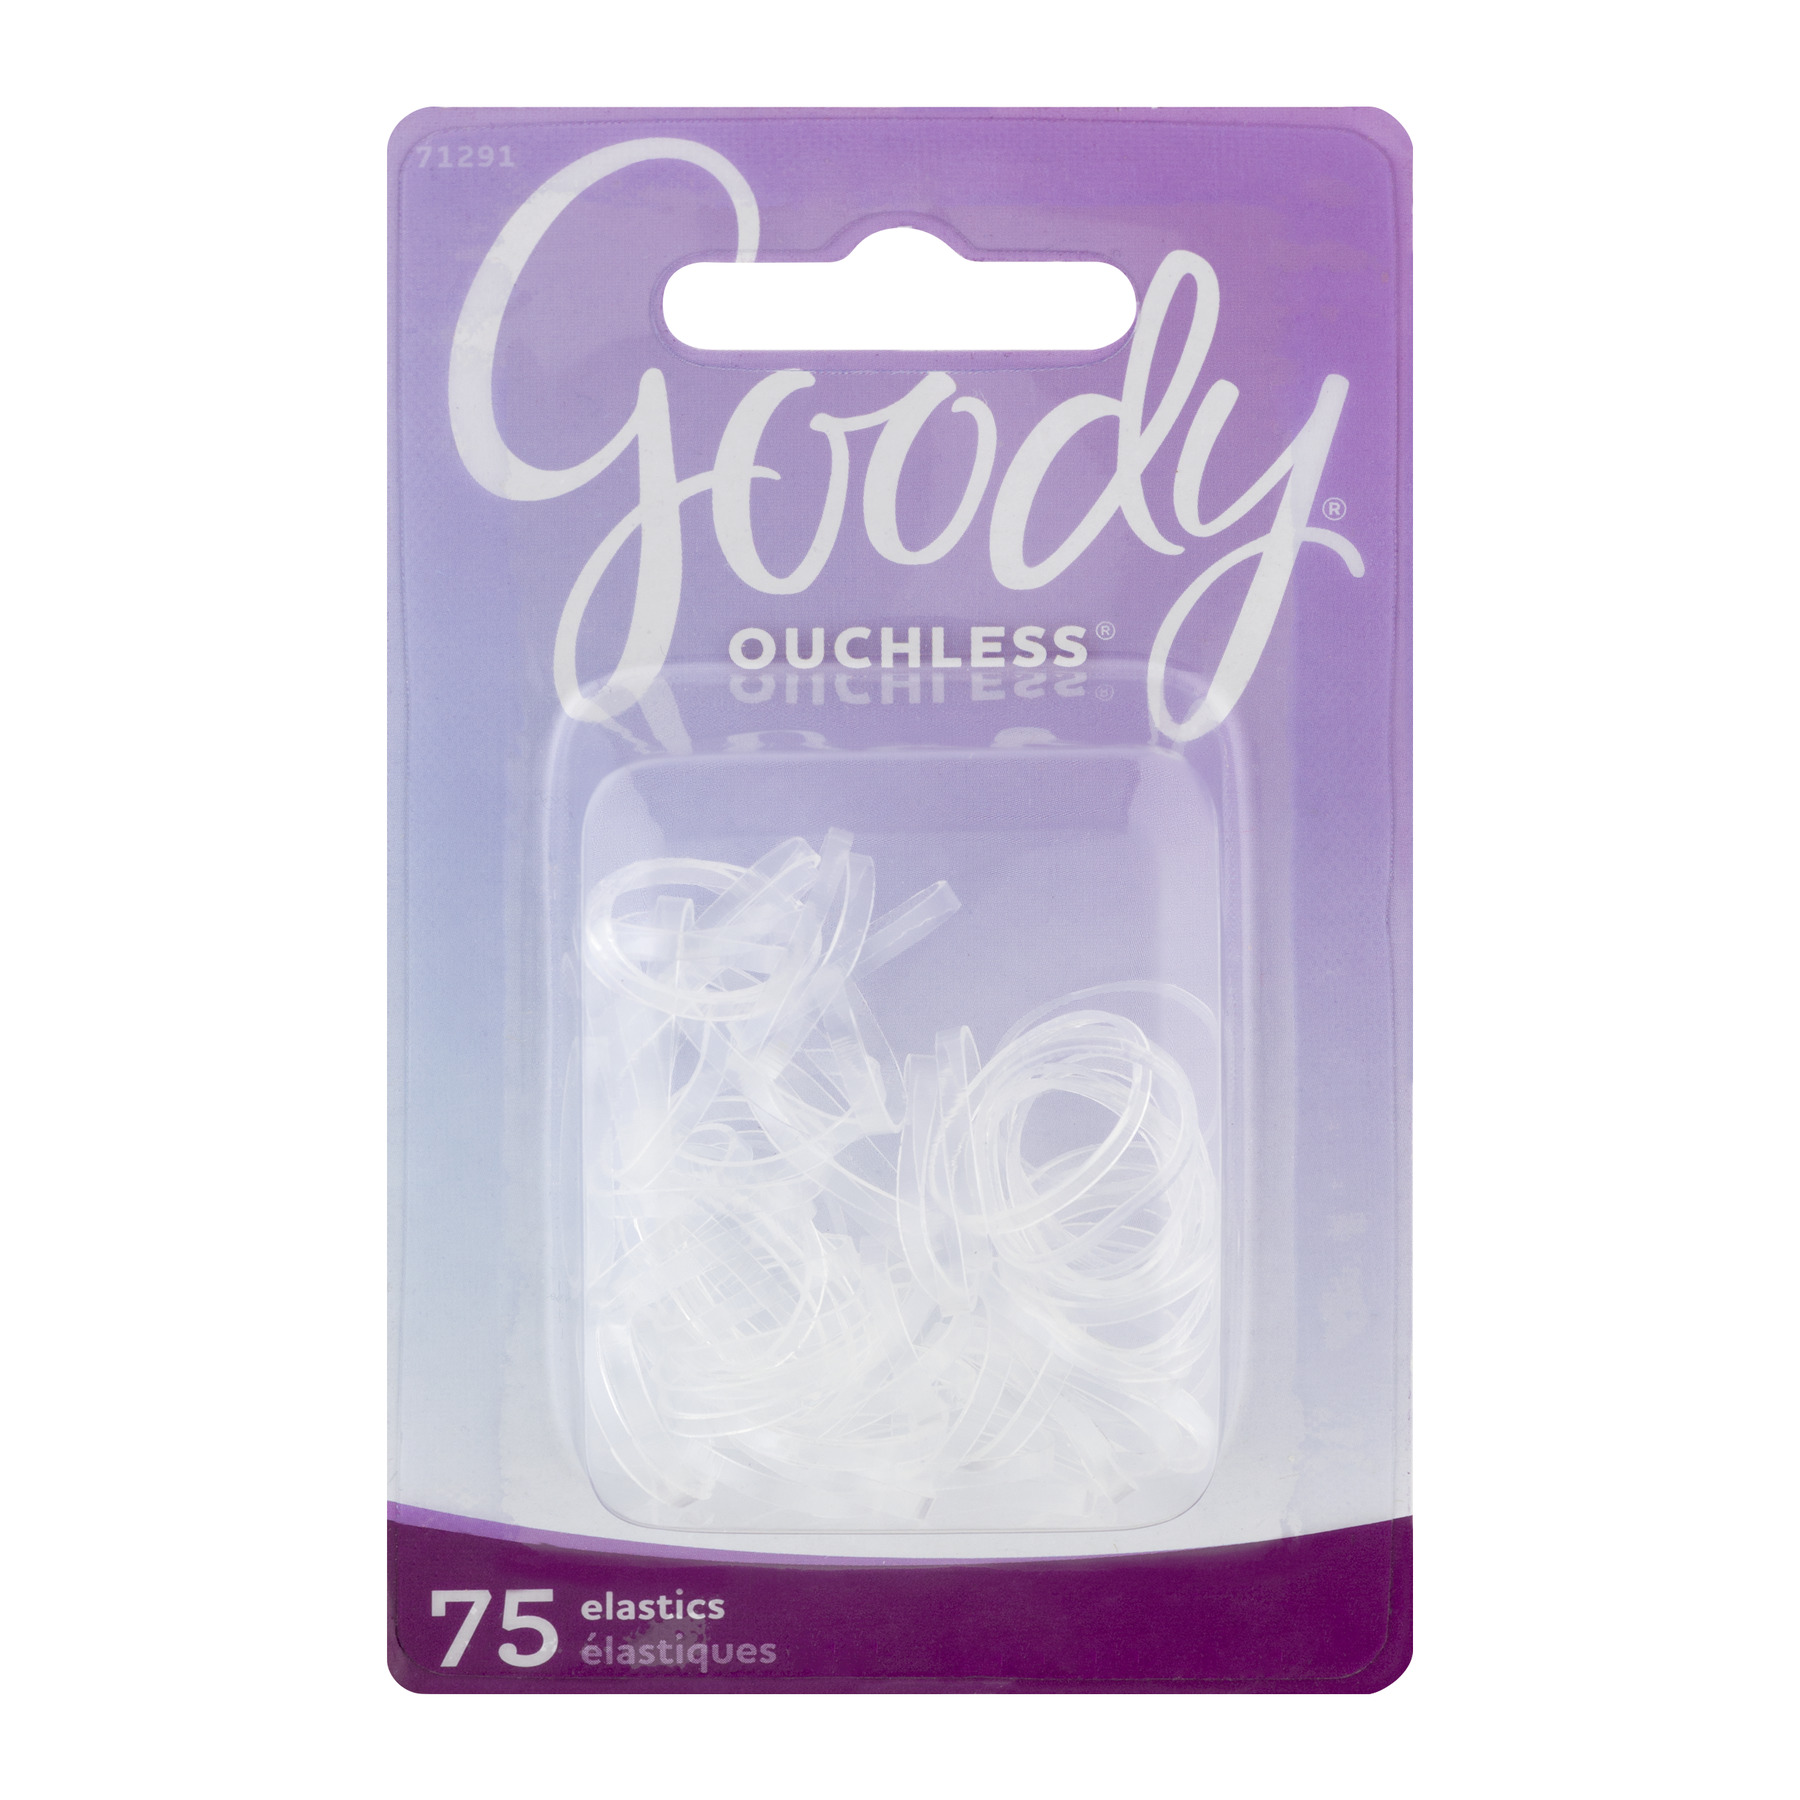 Goody Ouchless Elastics - 75 CT